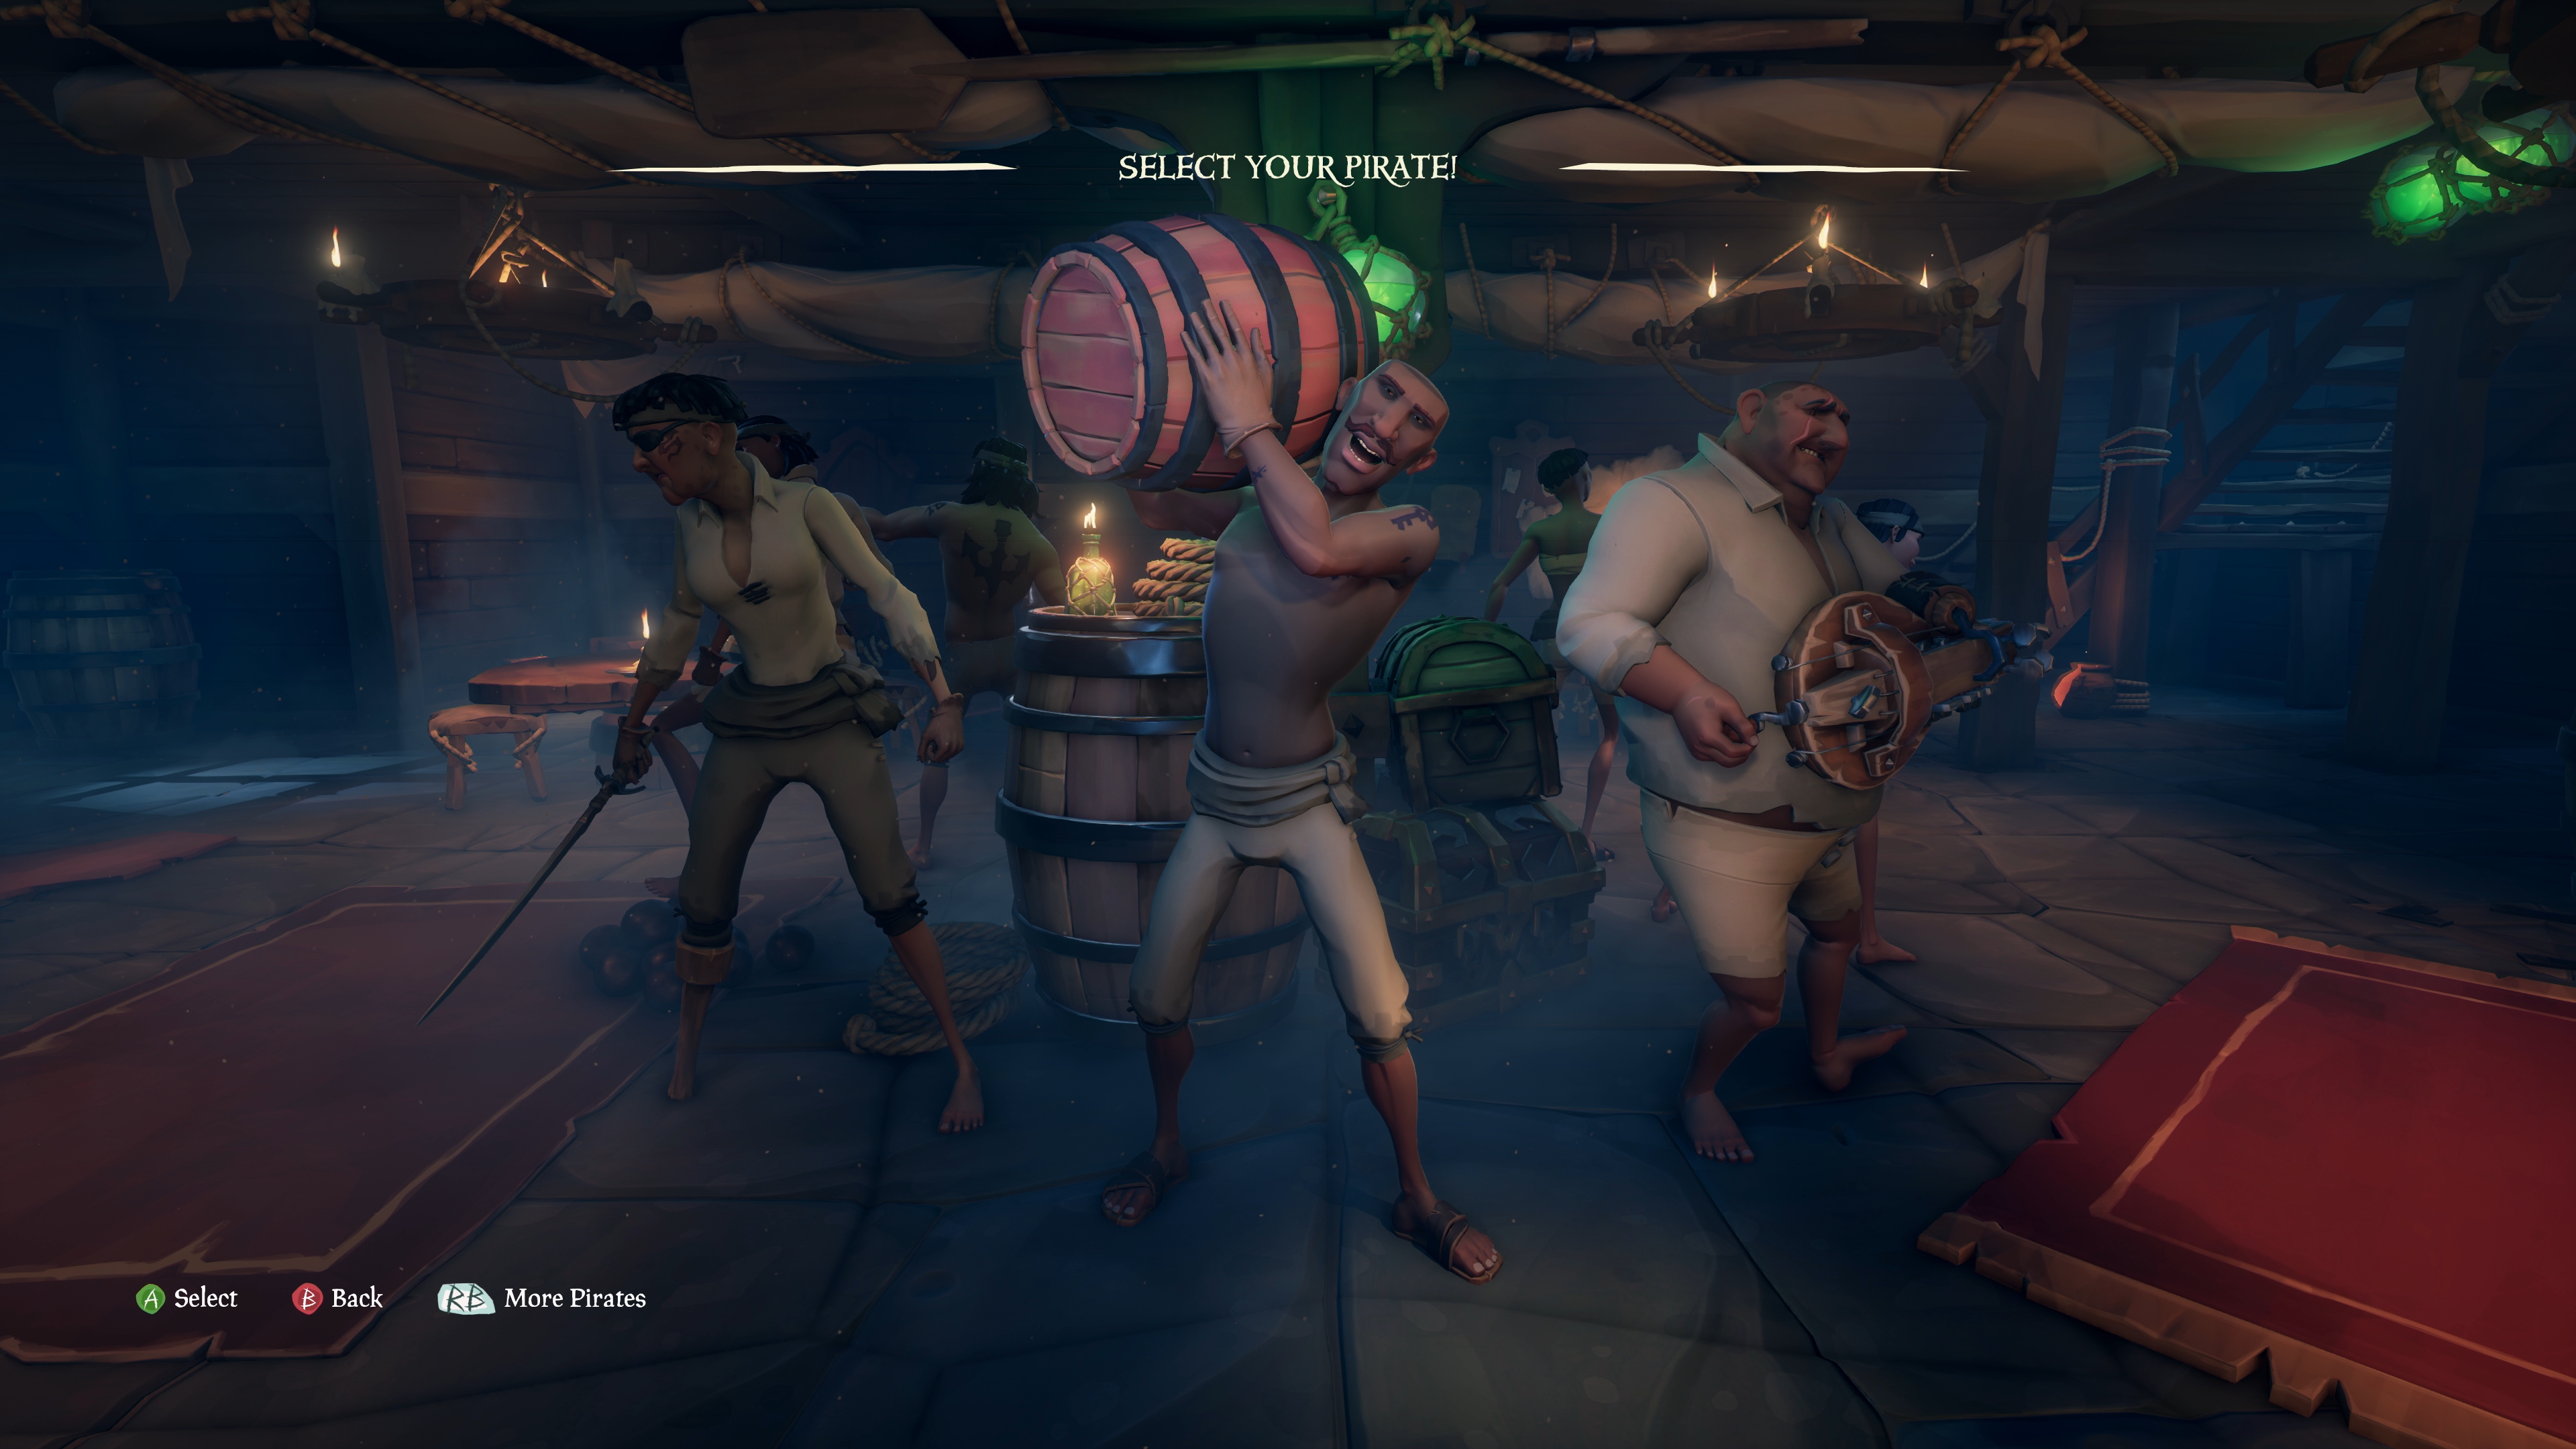 Pirate selection screen in Sea of Thieves